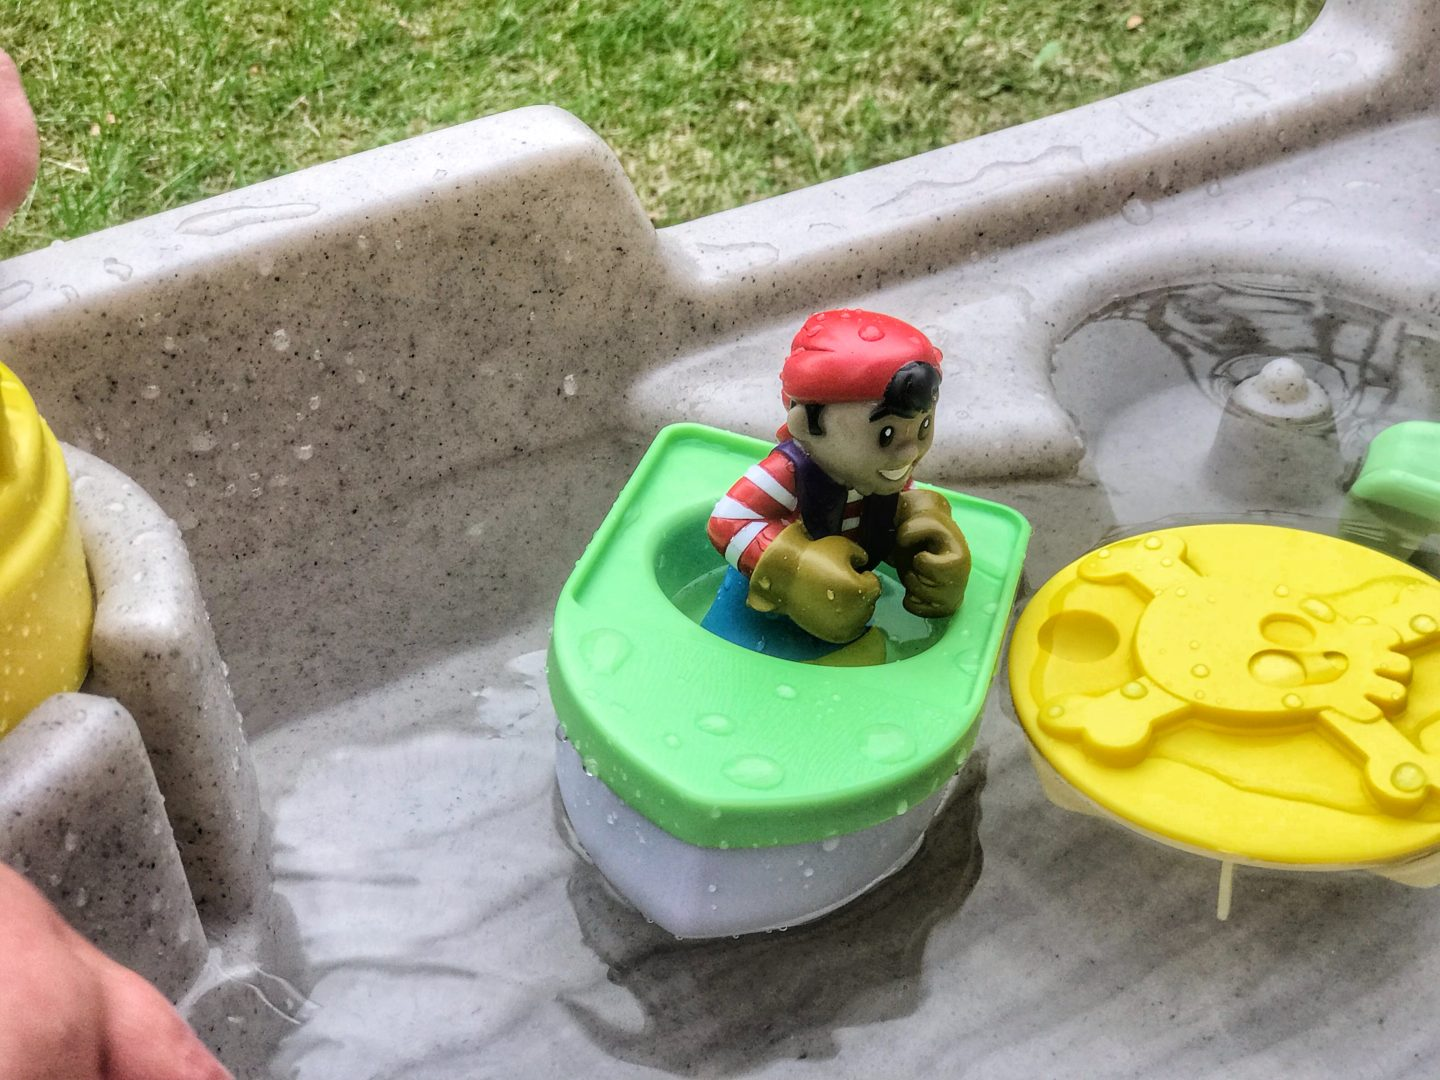 Close up of the pirate figure in the boat